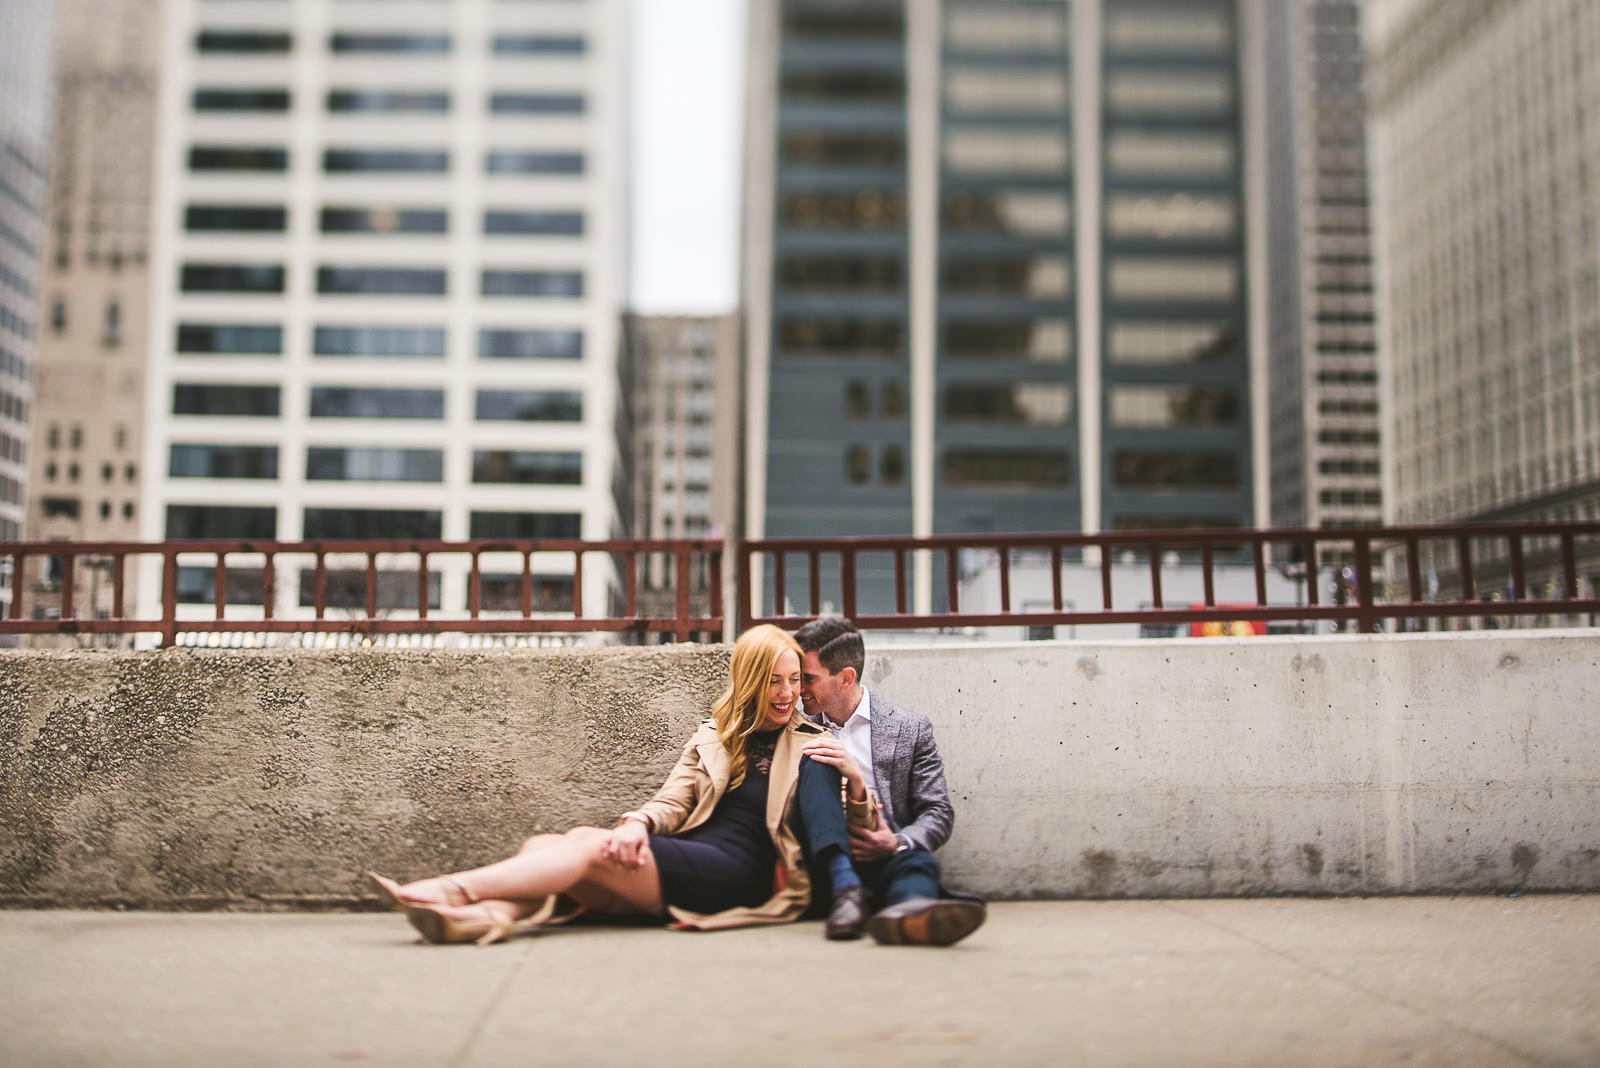 12 downtown chicago engagement photos - Megan + Bob // Chicago River North Engagement Session at Shaws Crab House